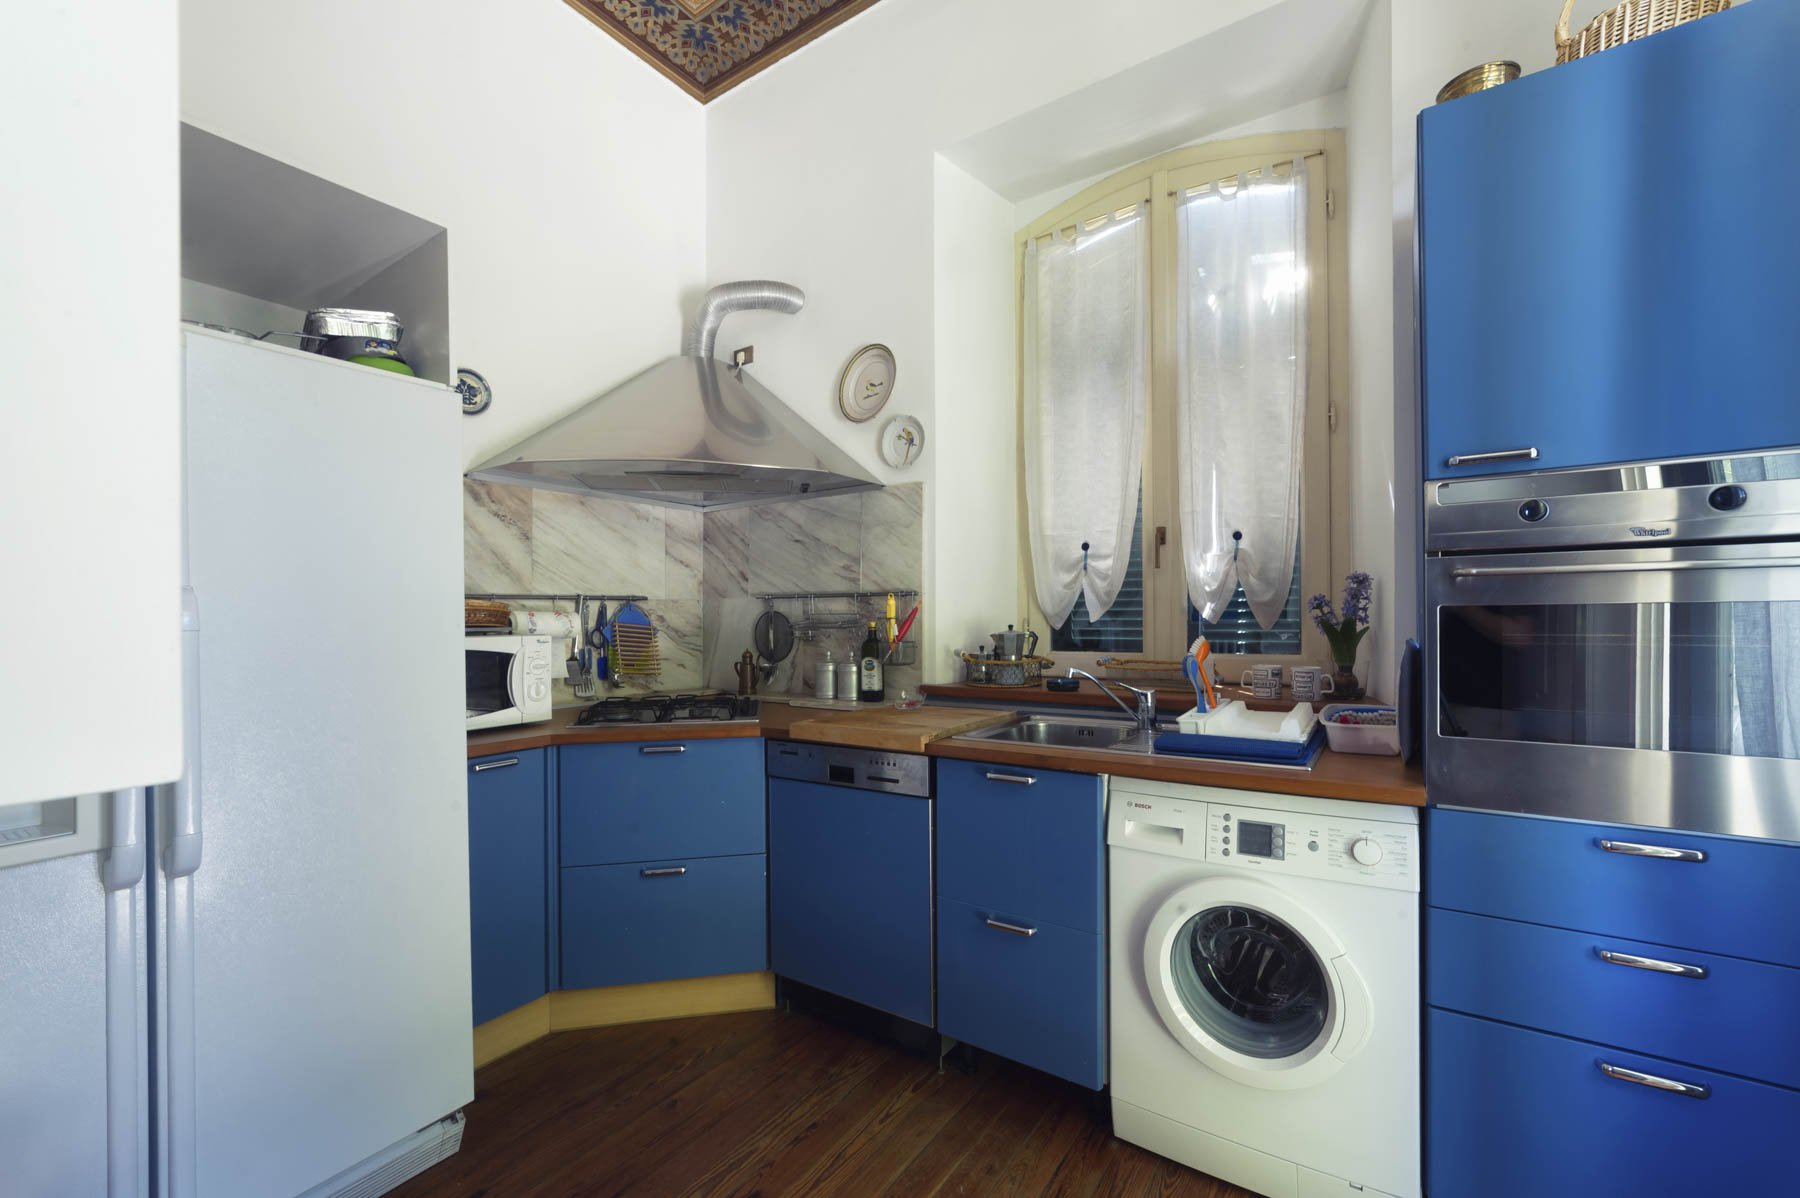 Luxurious apartment for sale in Stresa - kitchen